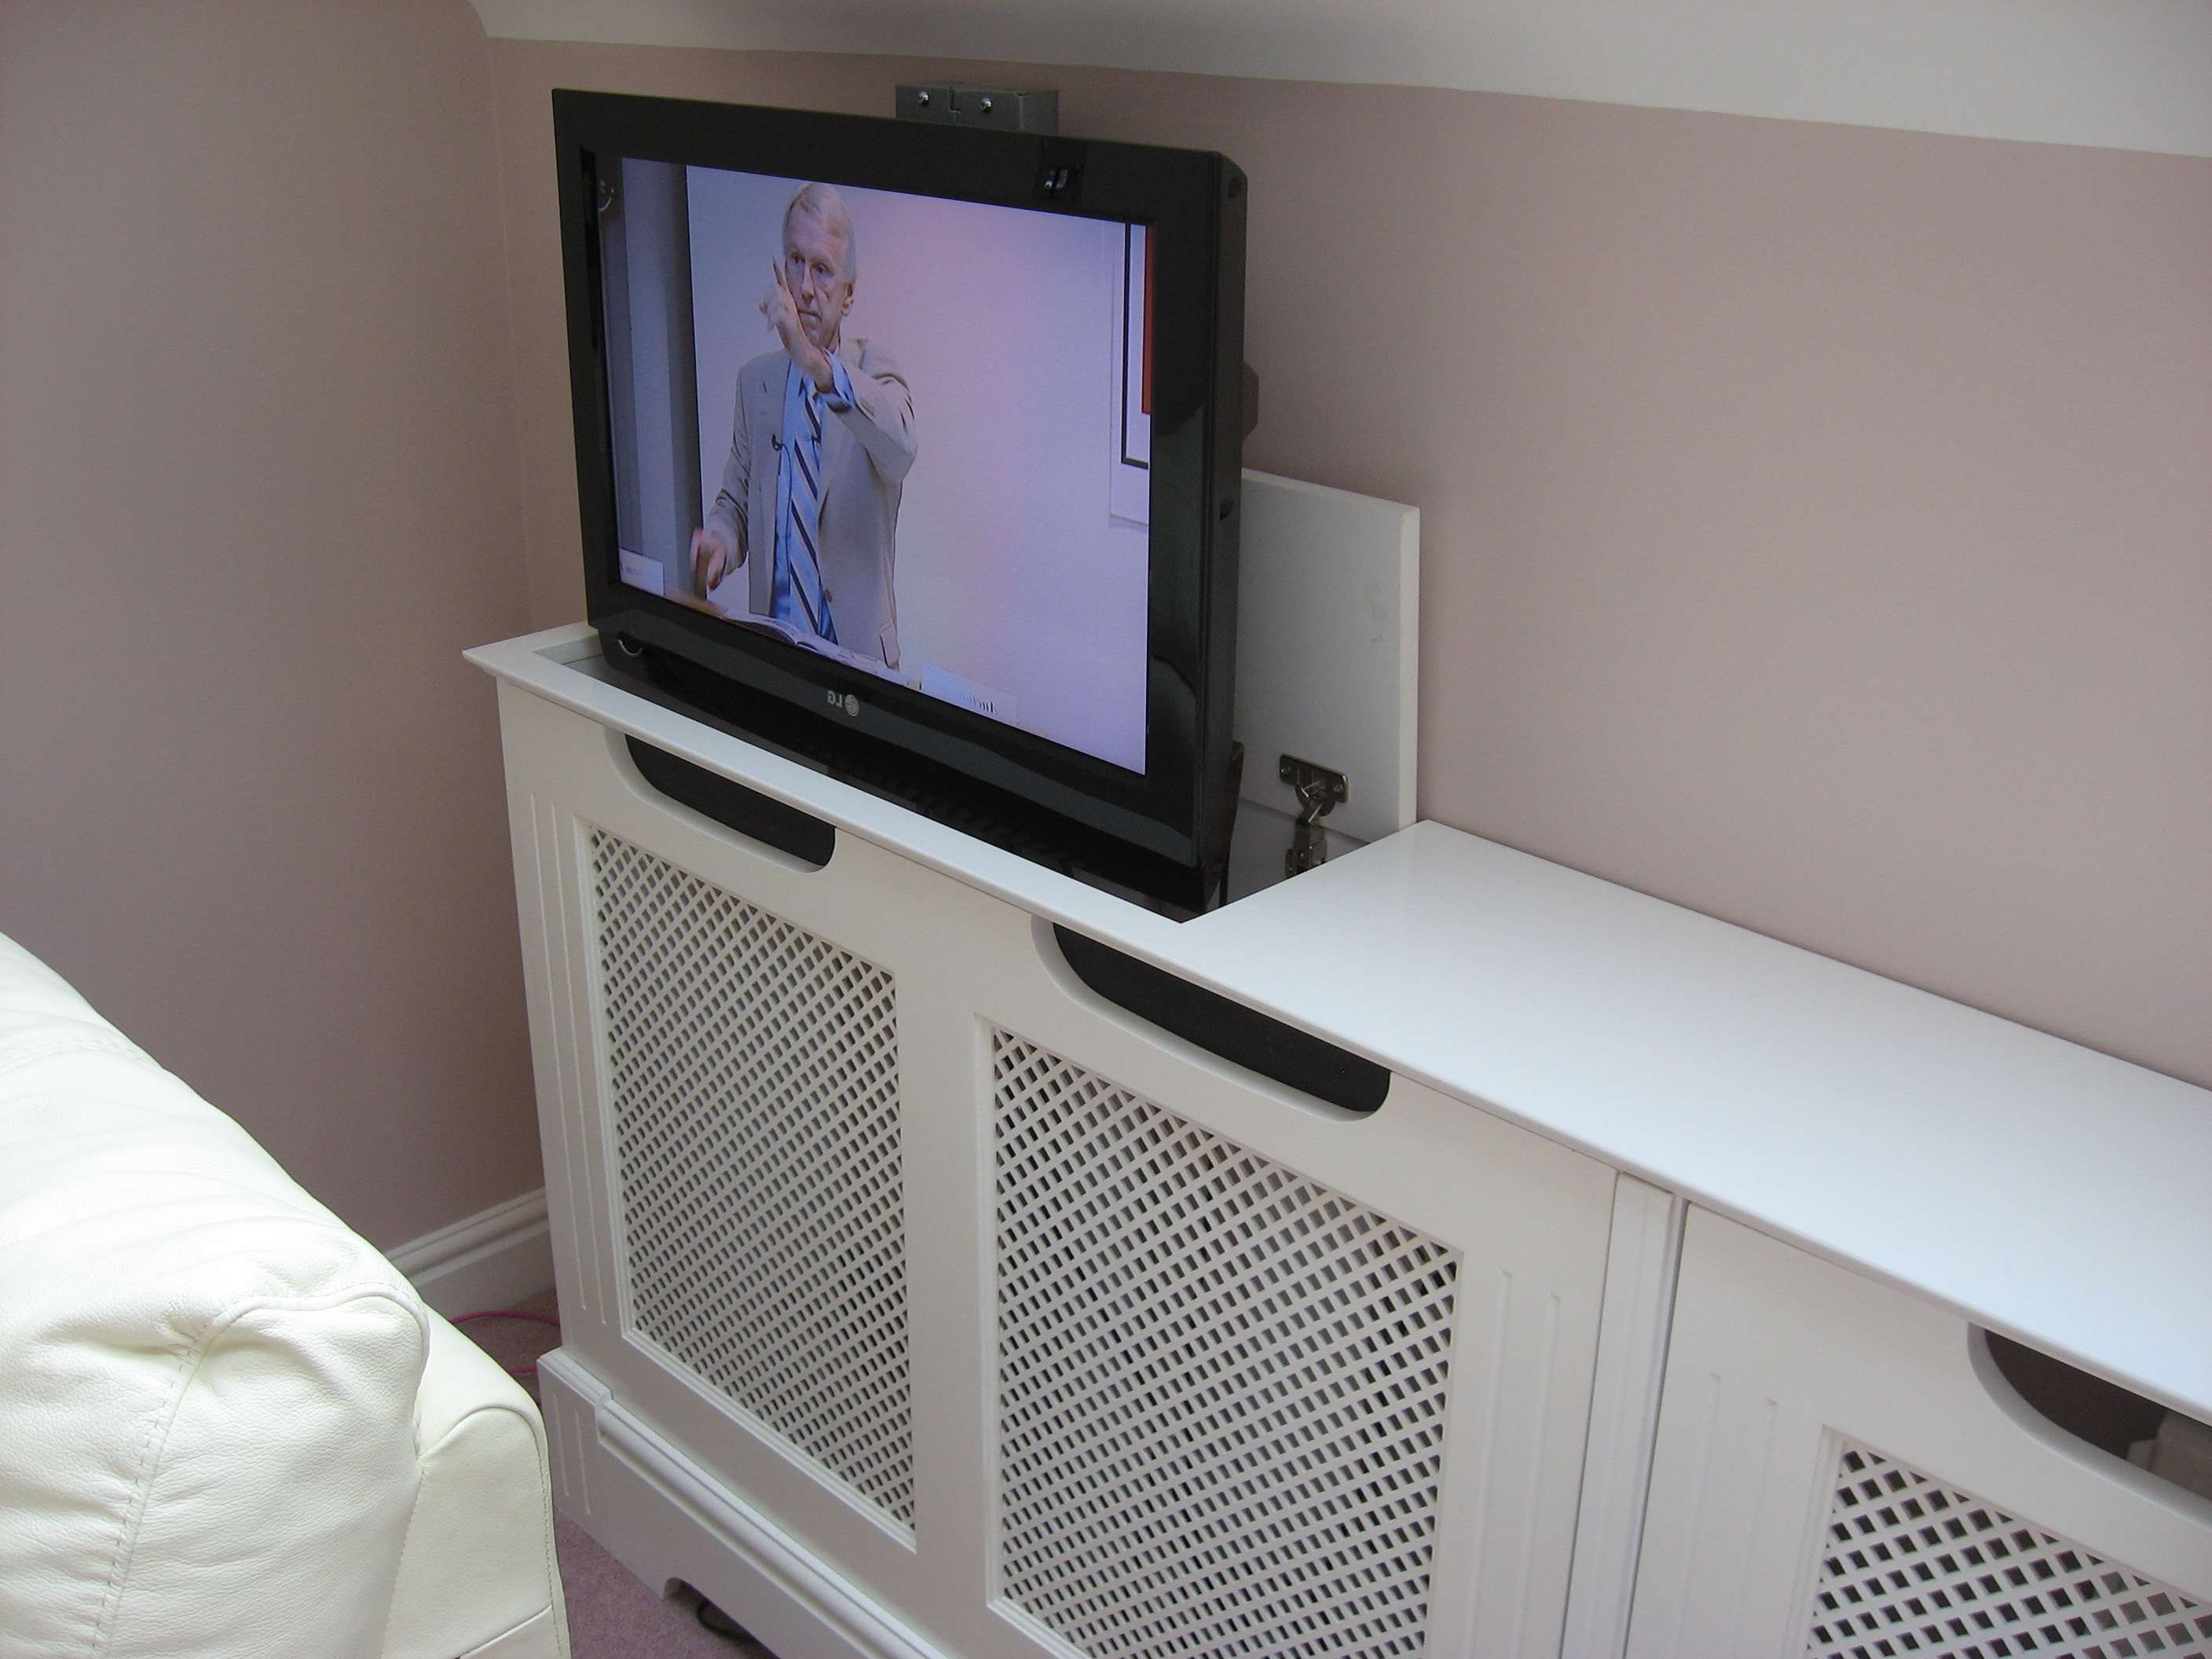 Pop Up Tv Cabinet Flat Screen From Baker Thomas Pheasant Regarding Pop Up Tv Stands (View 15 of 20)